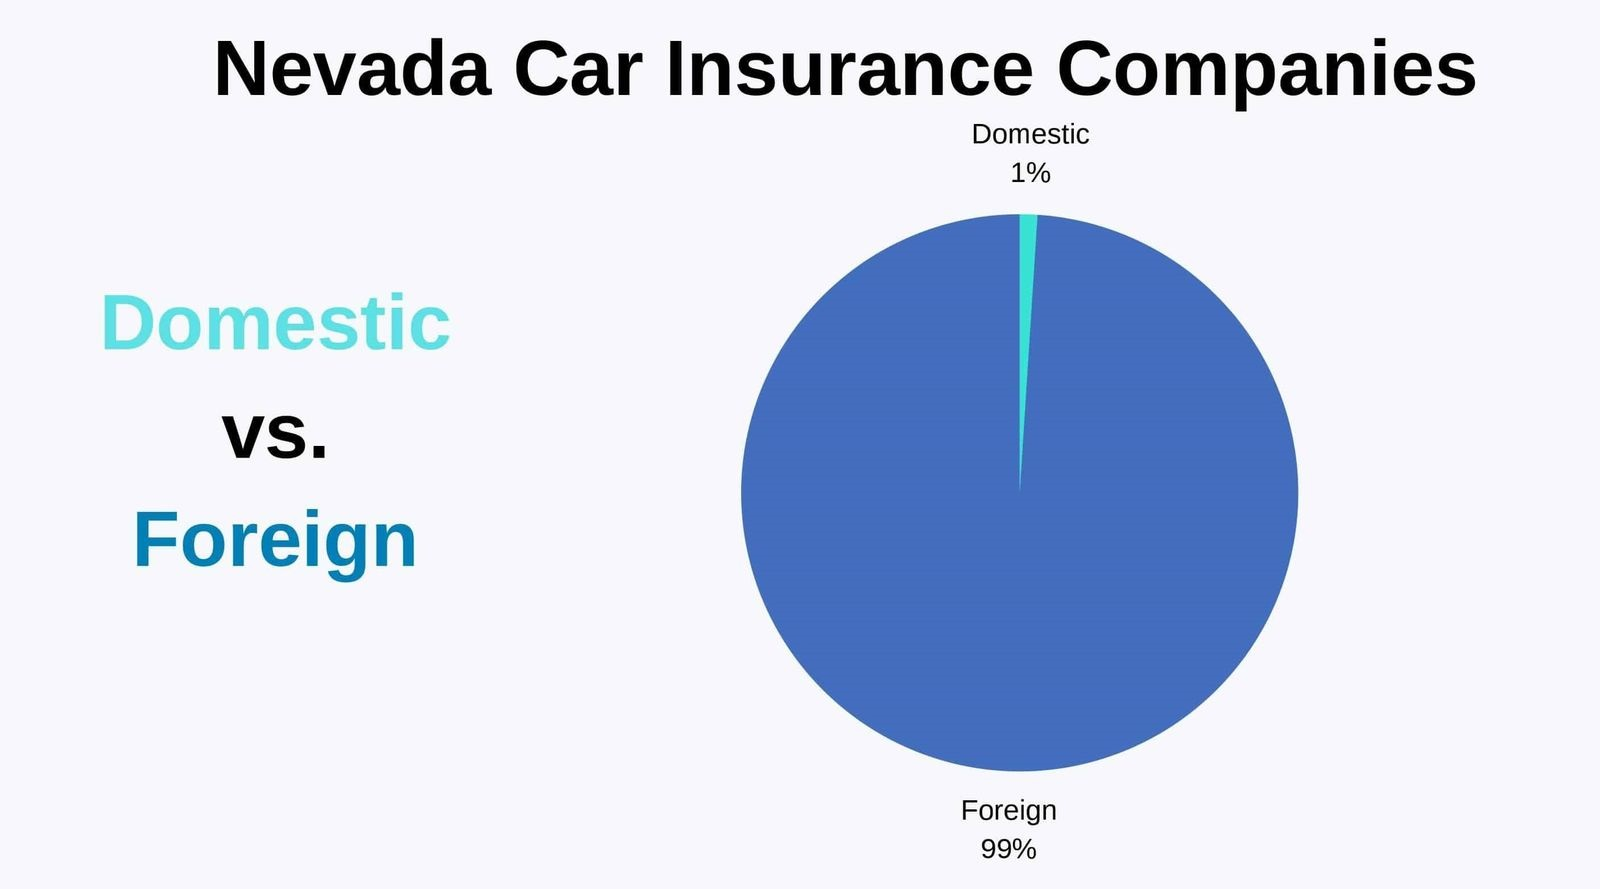 Nevada-Car-Insurance-Companies-Domestic-vs-Foreign